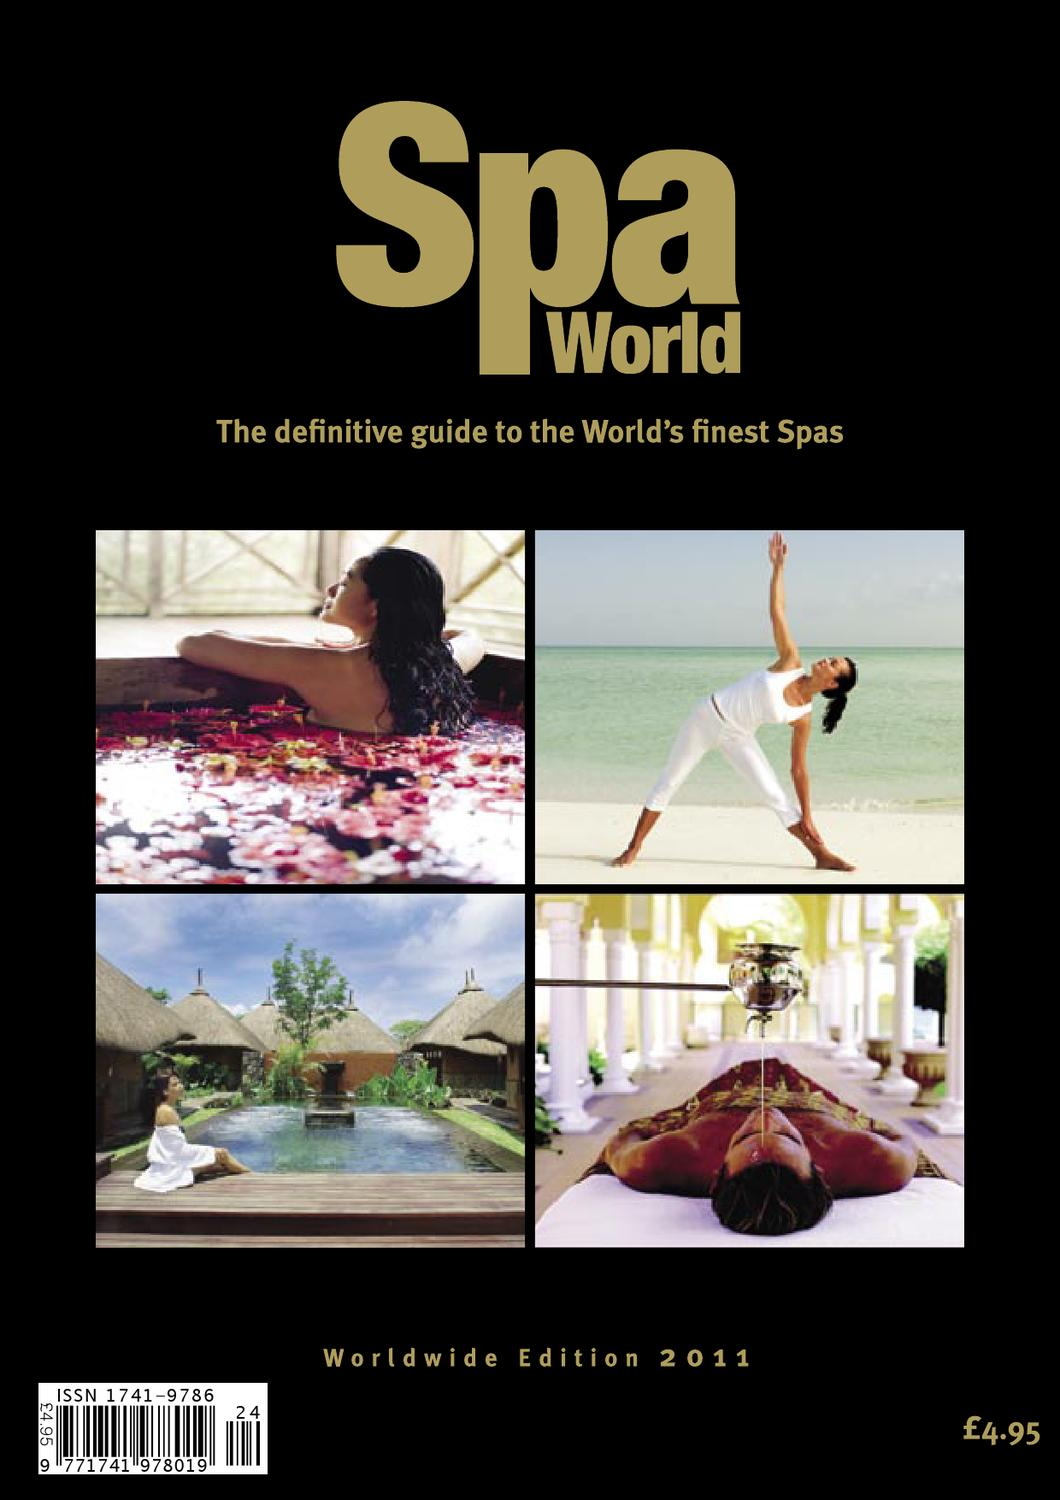 Immersion Piscines Et Spas spa worldjoint venture media - issuu